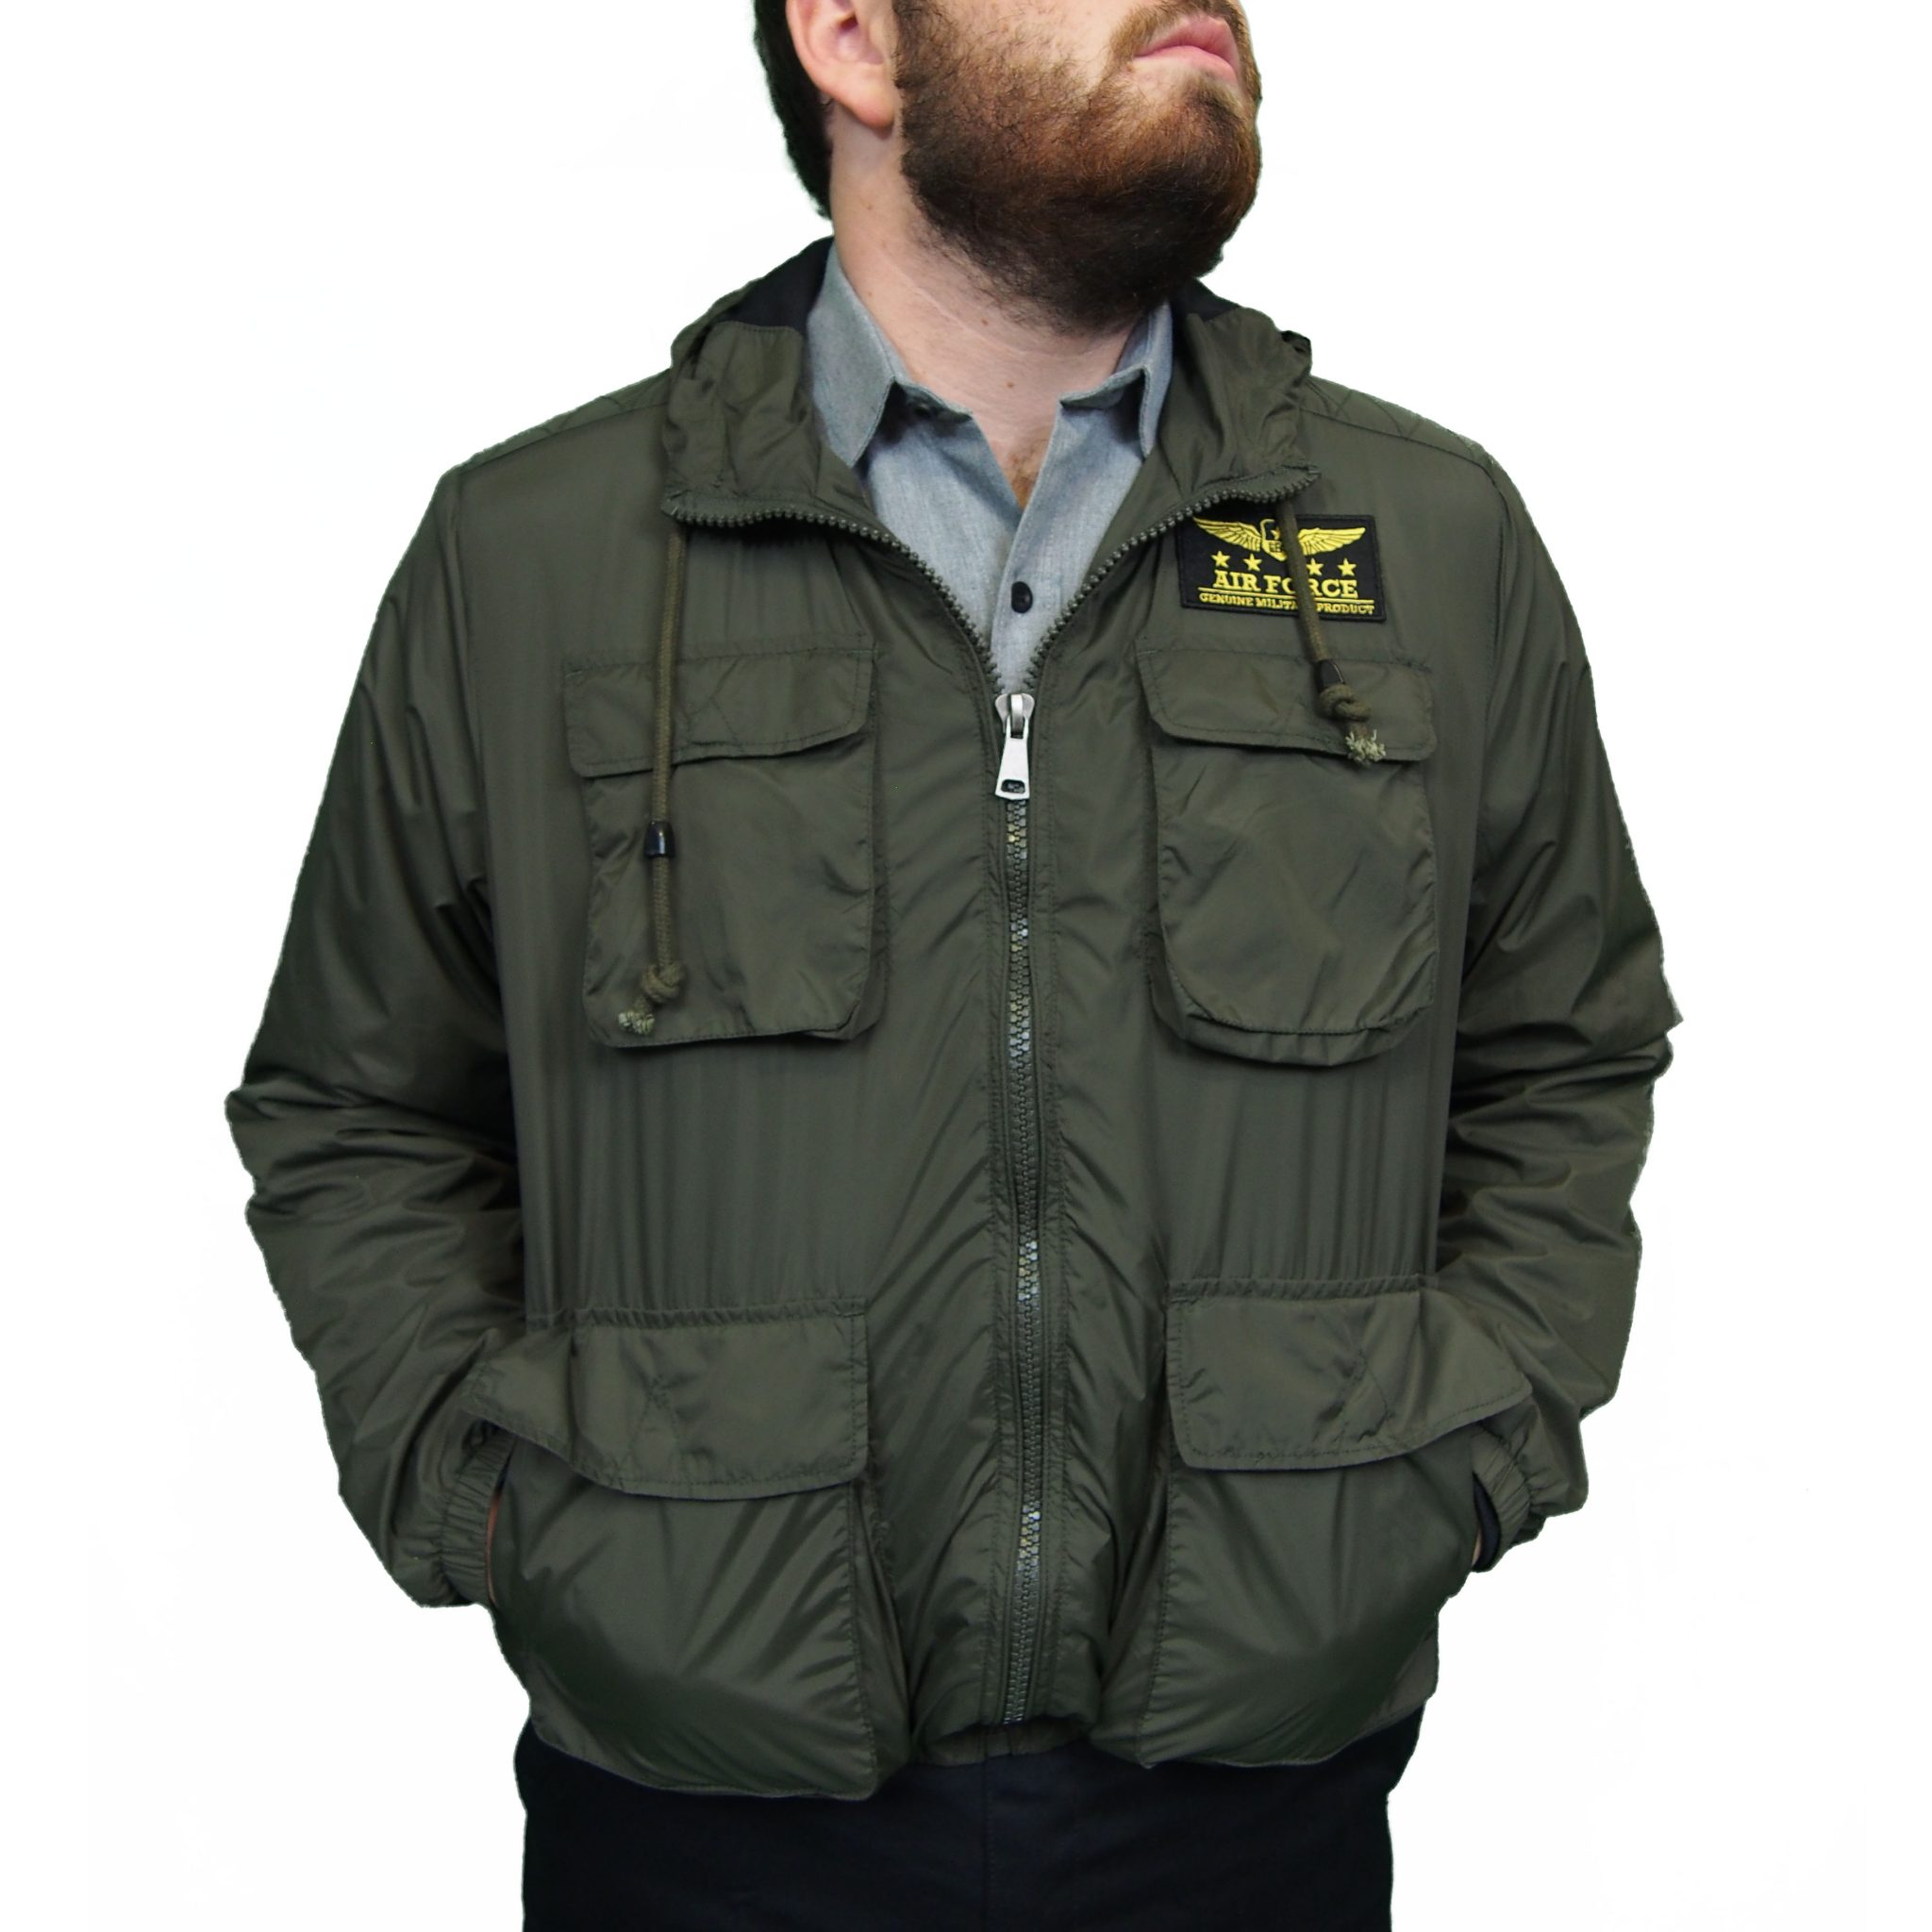 Mil-Tec Air Force Jacket | Olive